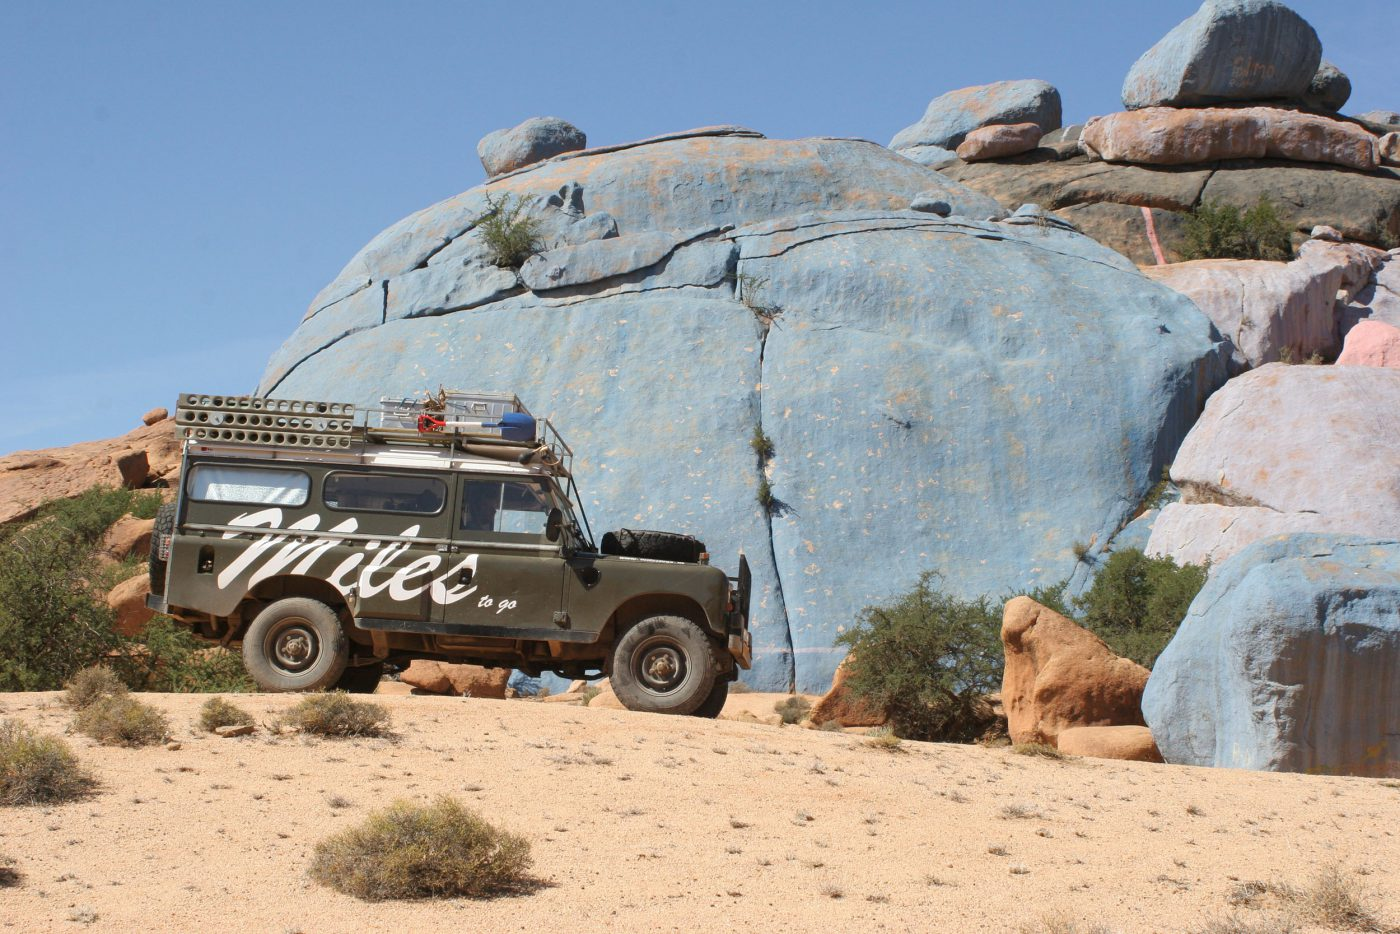 Land Rover visiting the Blue Rock in desert Marocco